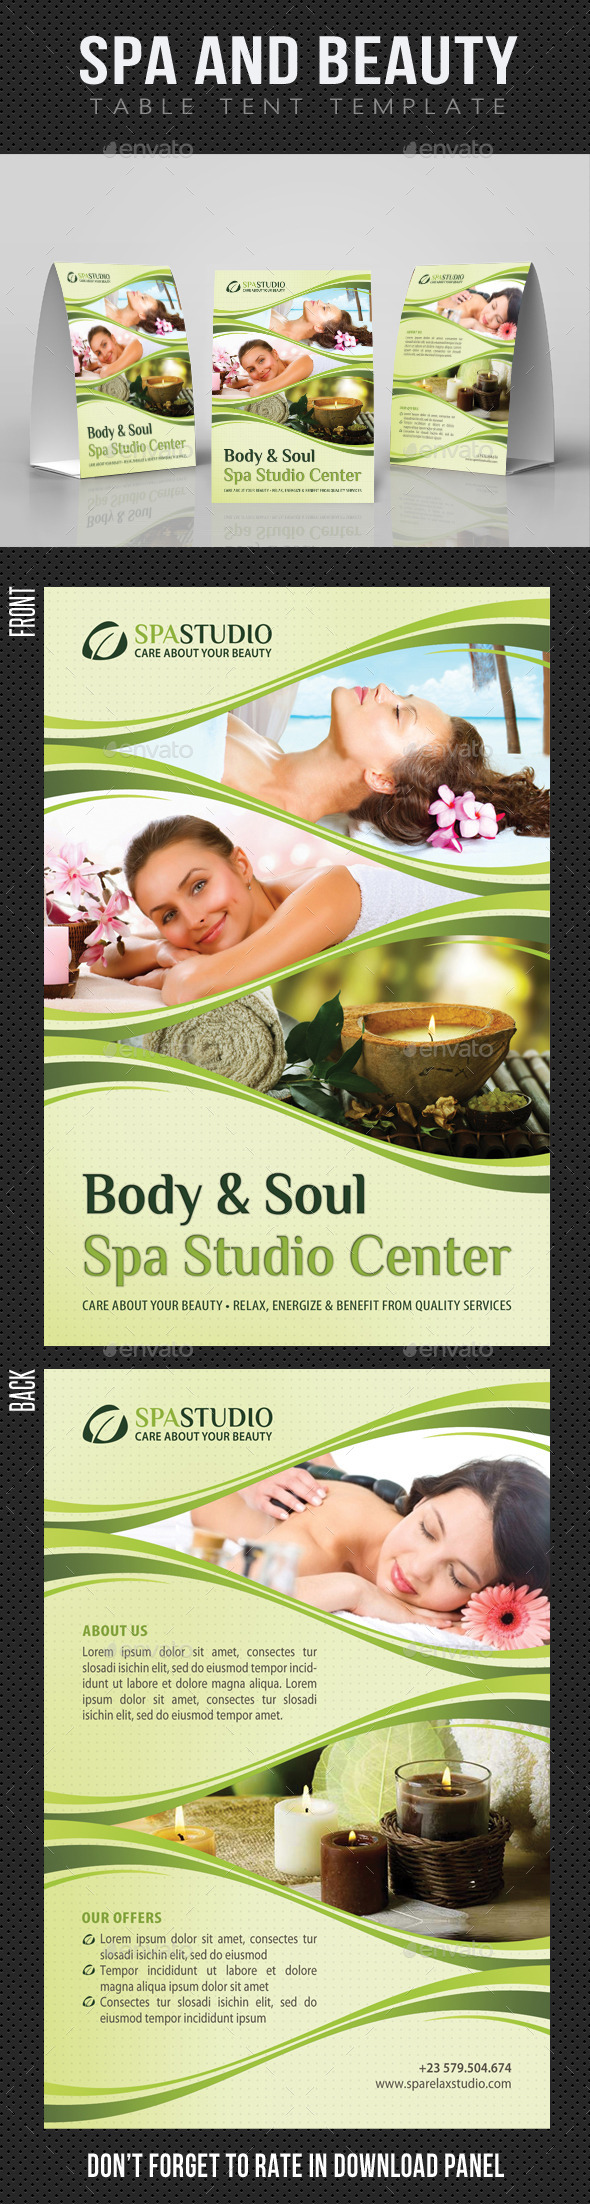 Spa And Beauty Table Tent Template 01 - Miscellaneous Print Templates